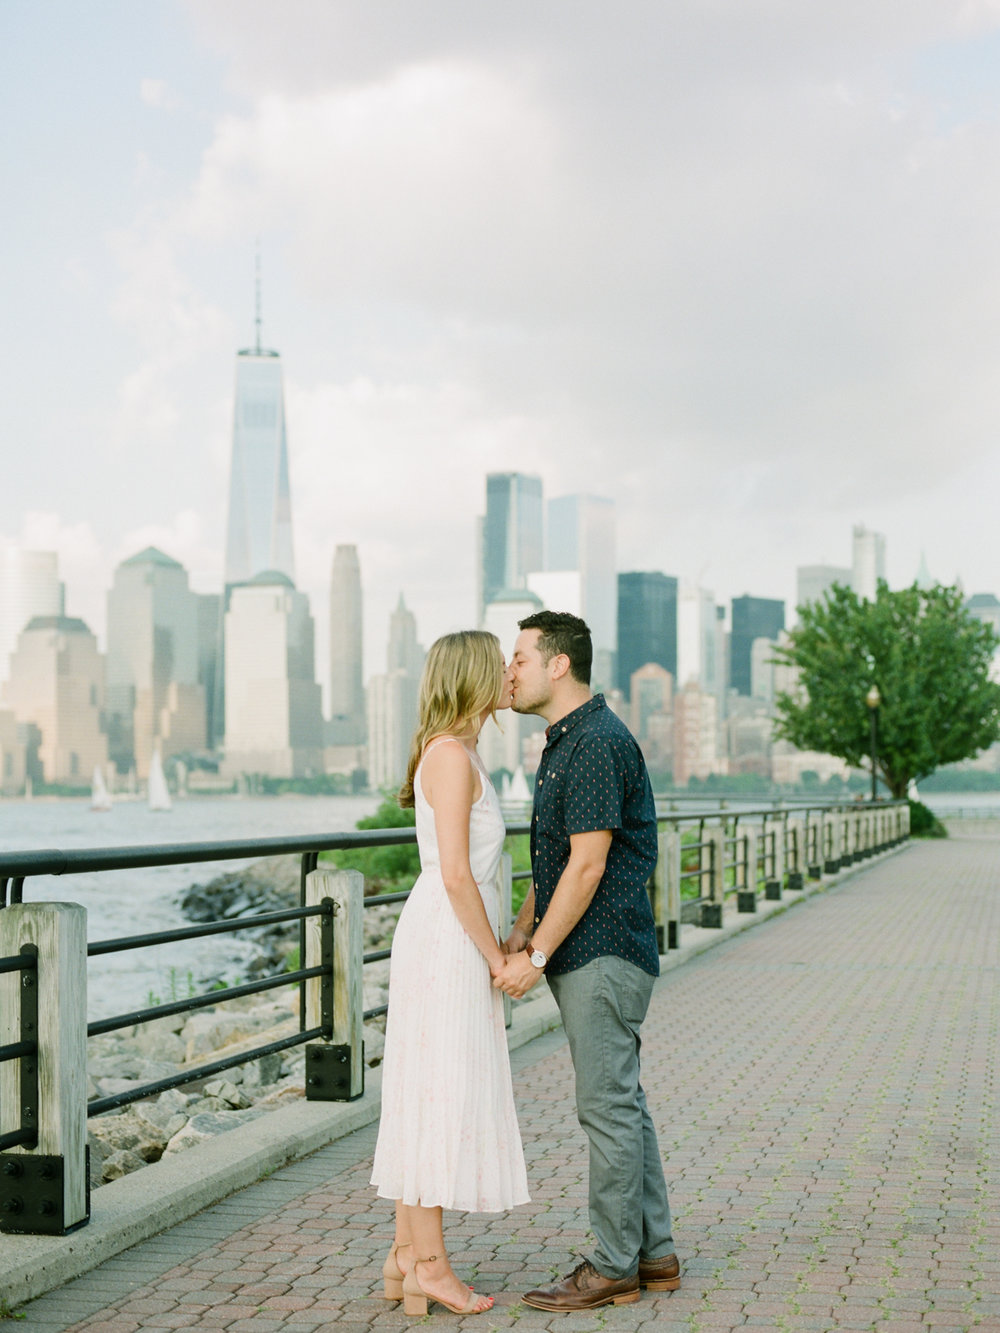 NYC-skyline-engagement-session-by-Tanya Isaeva-12.jpg